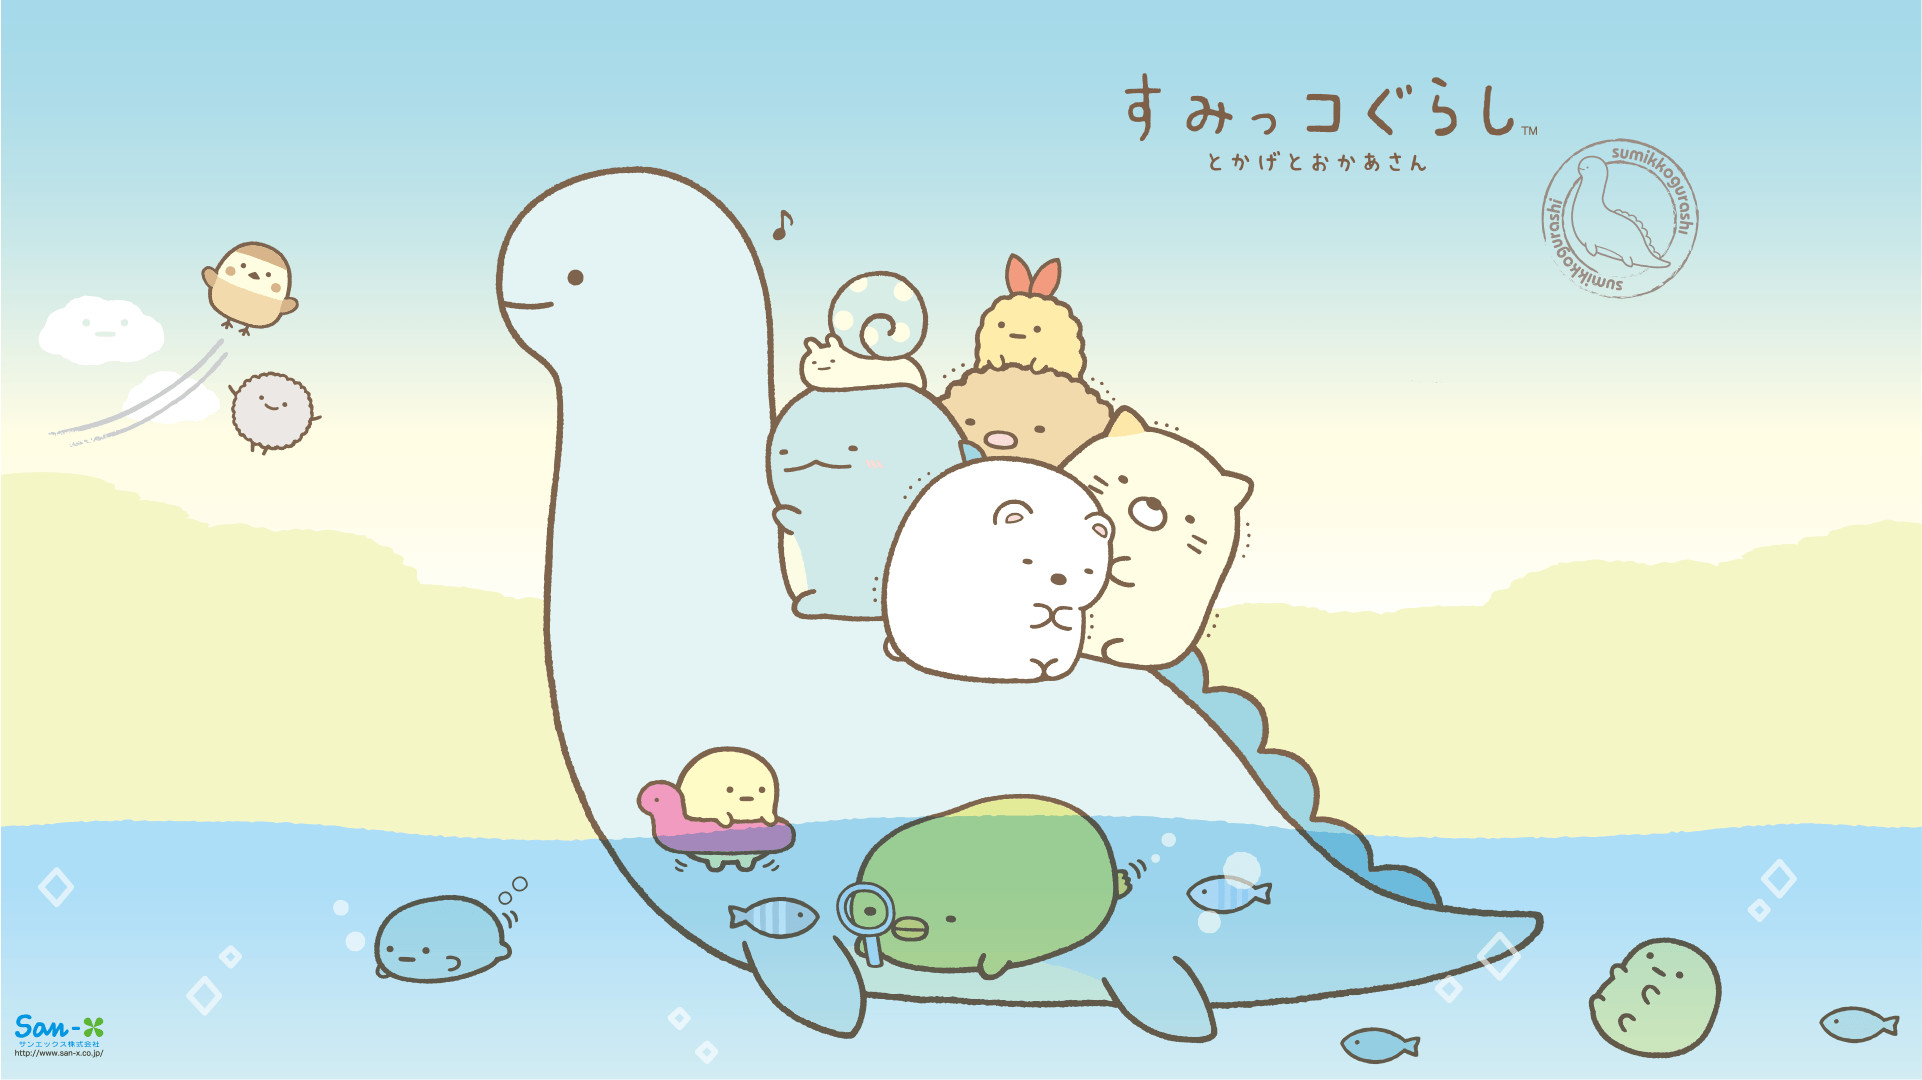 1922x1080 Sumikko Gurashi Tale of Lizard Wallpaper